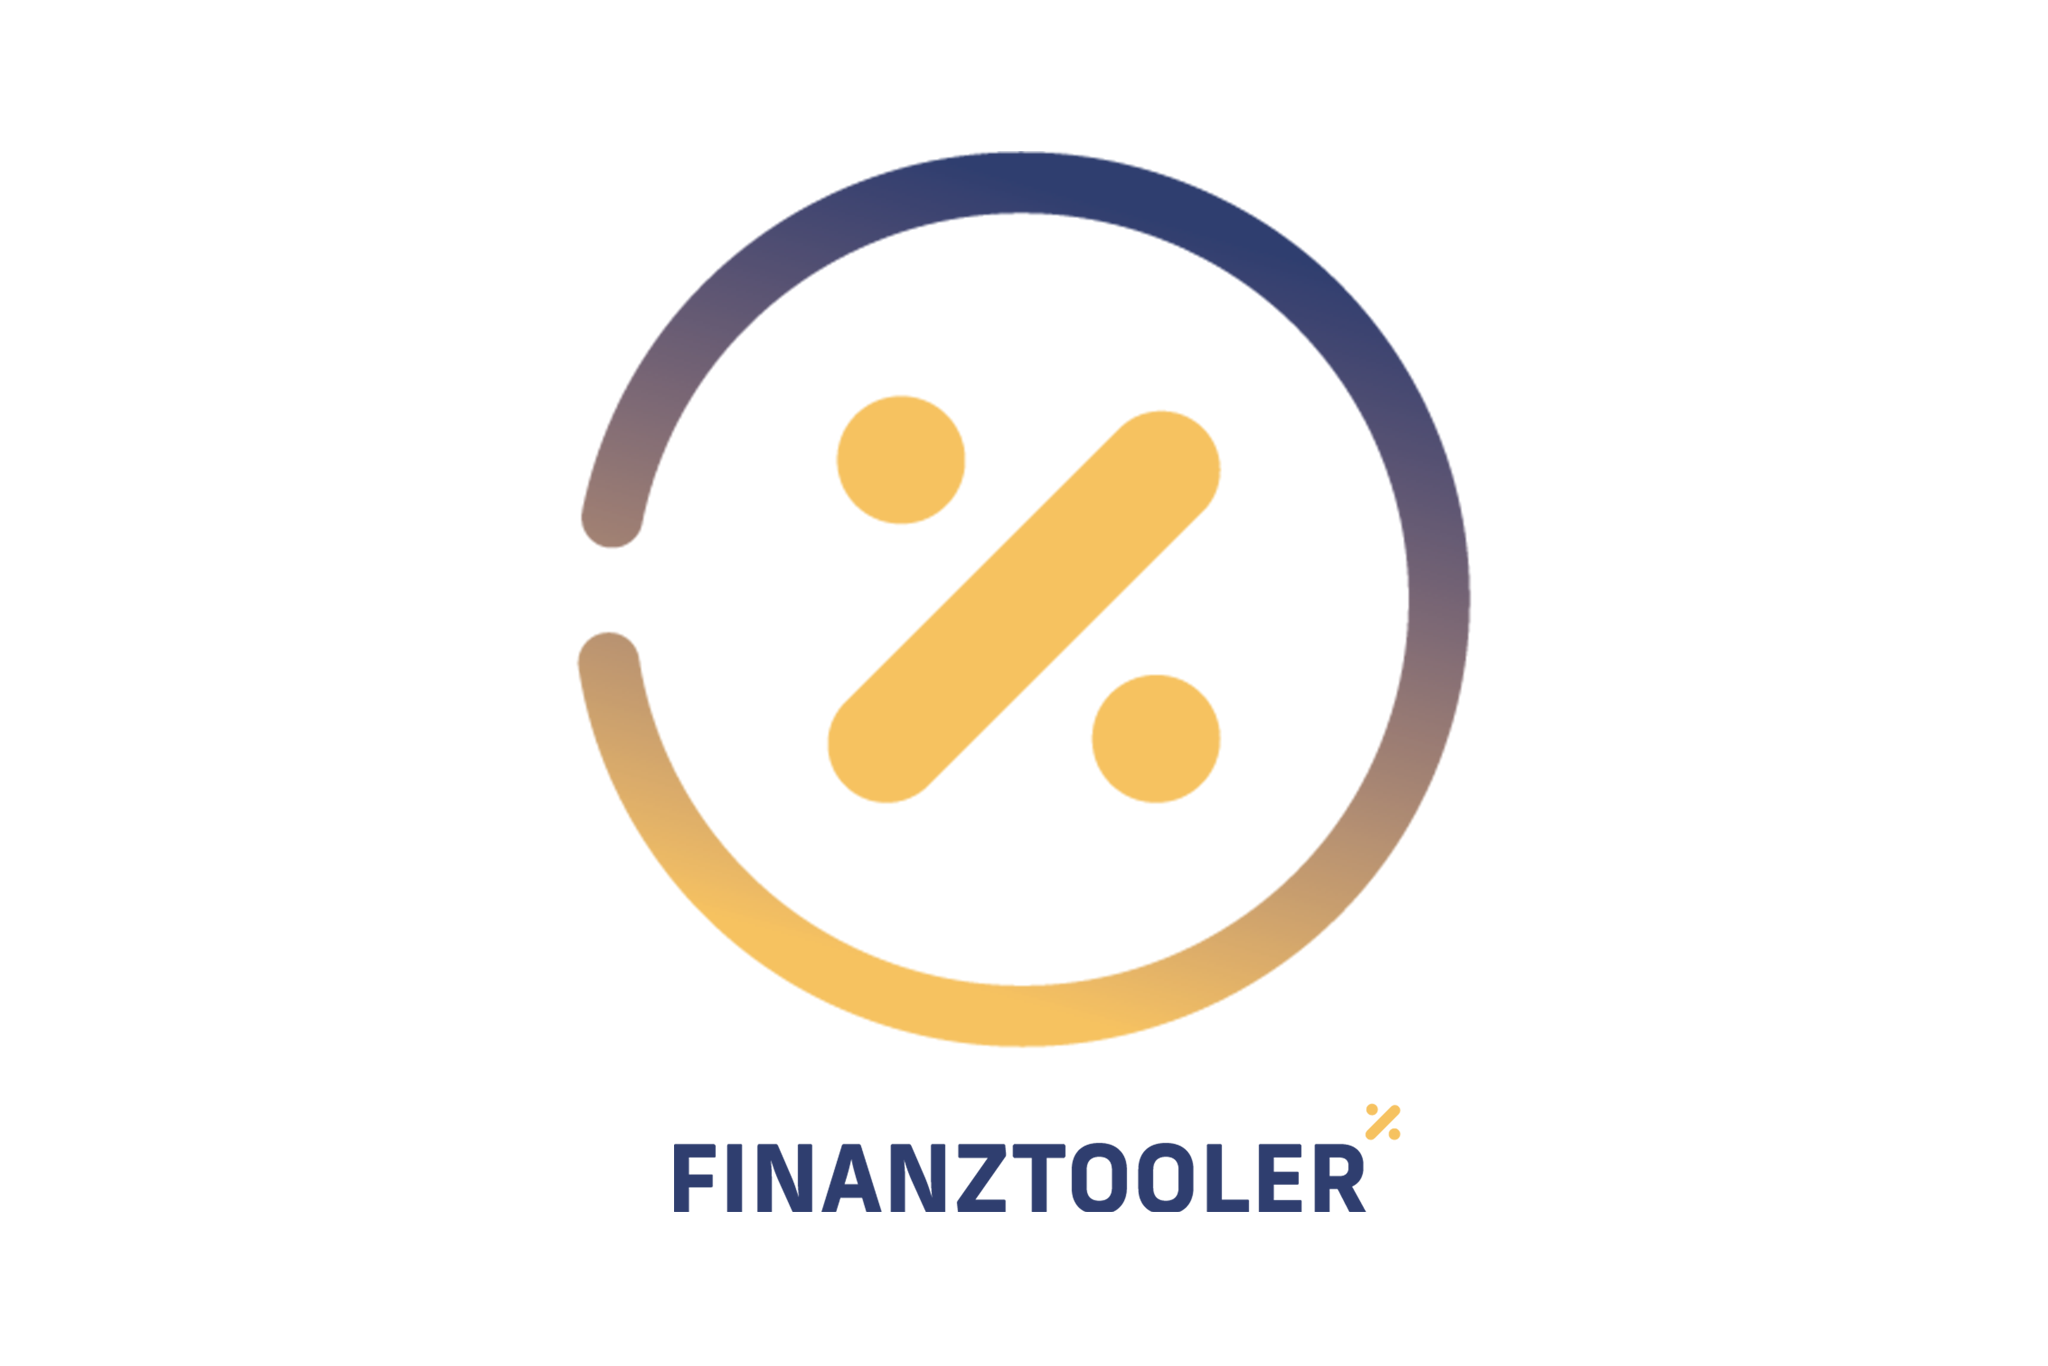 https://immotooler.com/wp-content/uploads/2021/05/FINANZTOOLER-icon-3.png